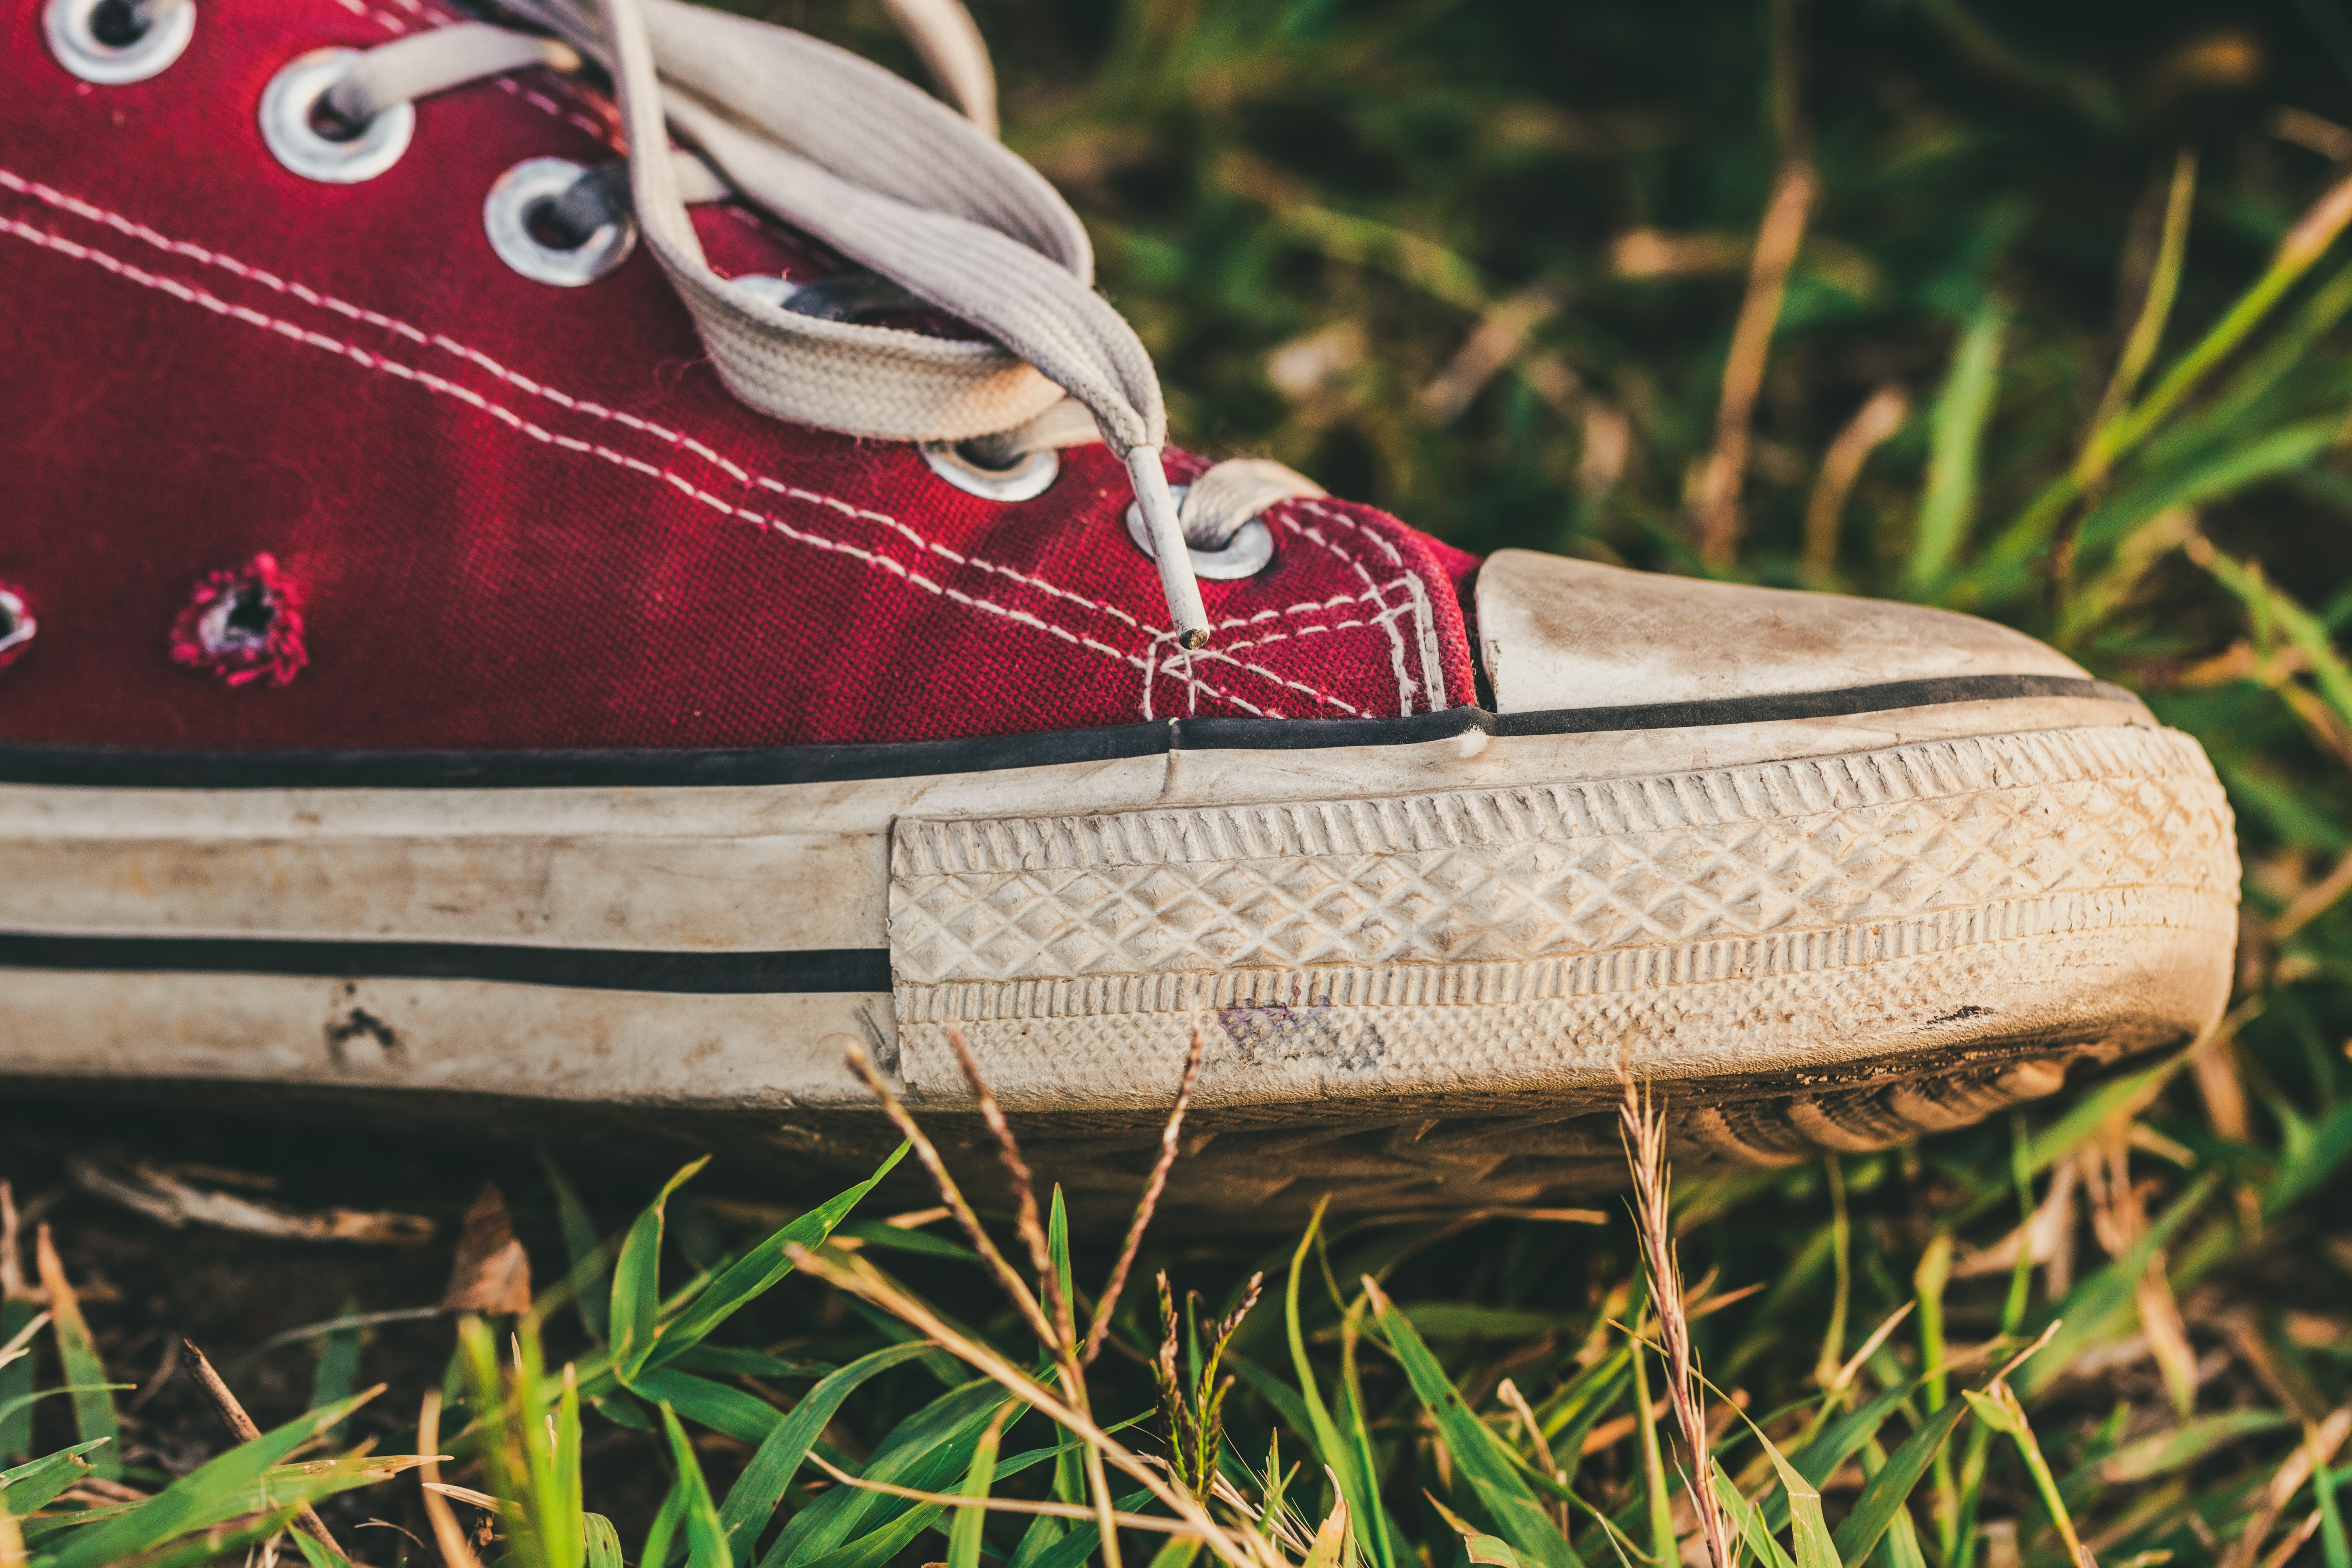 red and white shoe on grass